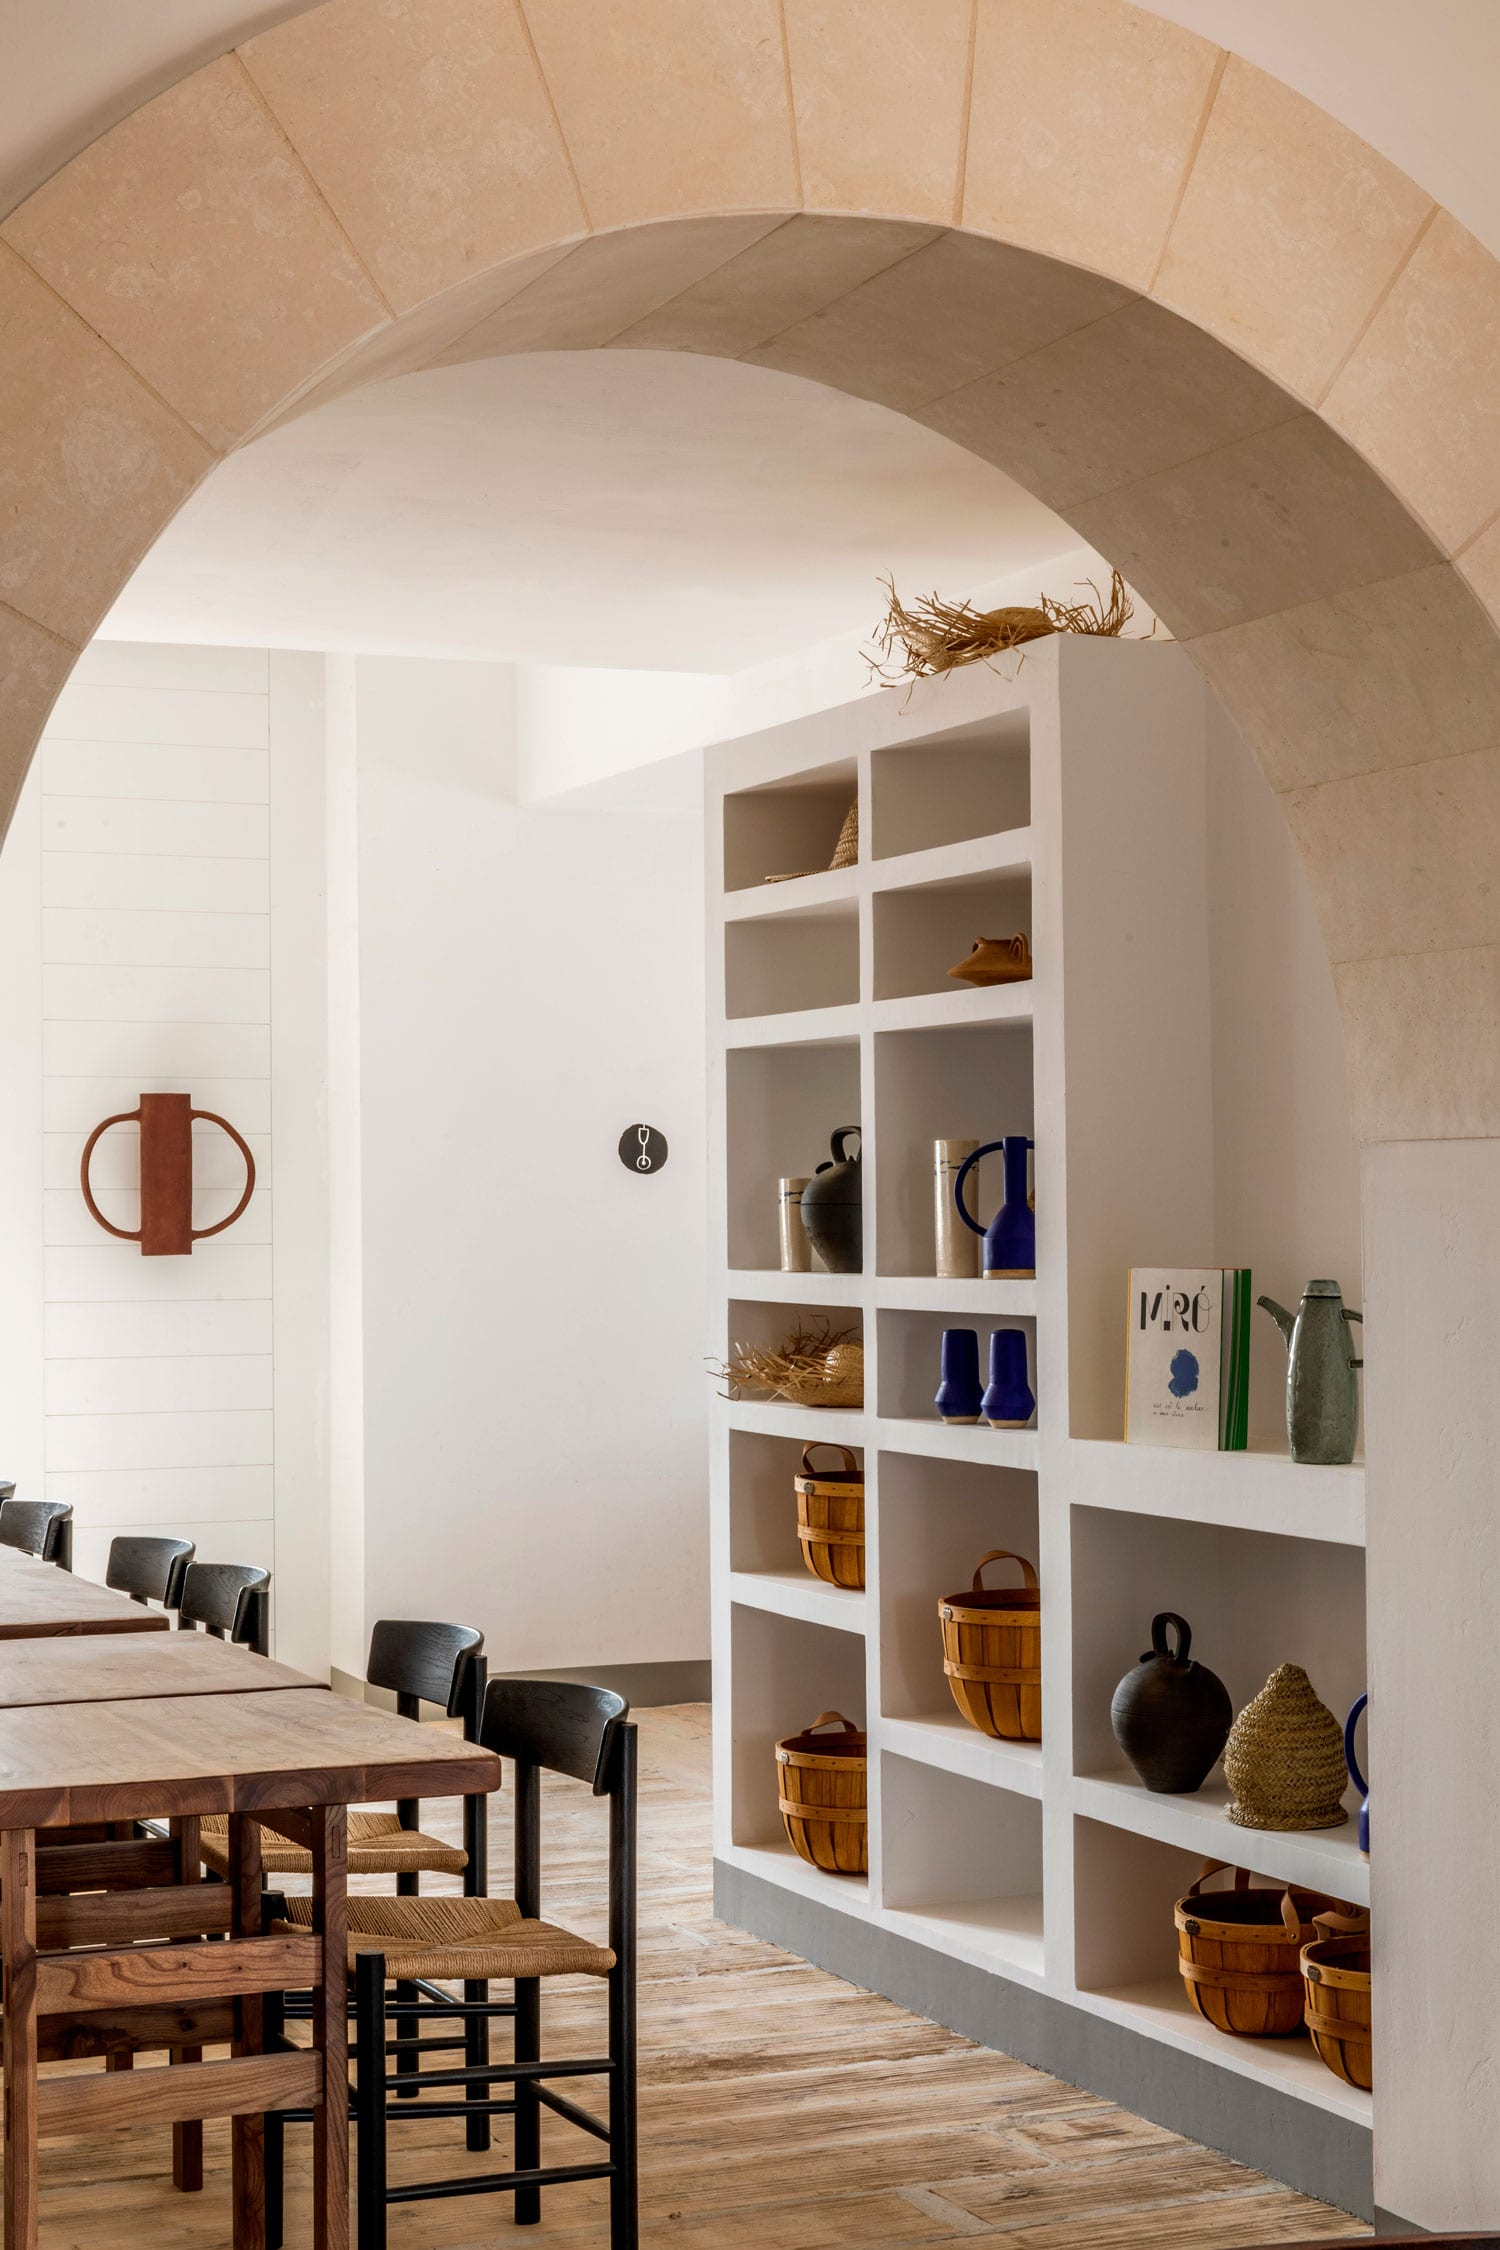 Menorca-Experimental-Hotel-Spain-by-Dorothee-Meilichzon-Yellowtrace-03